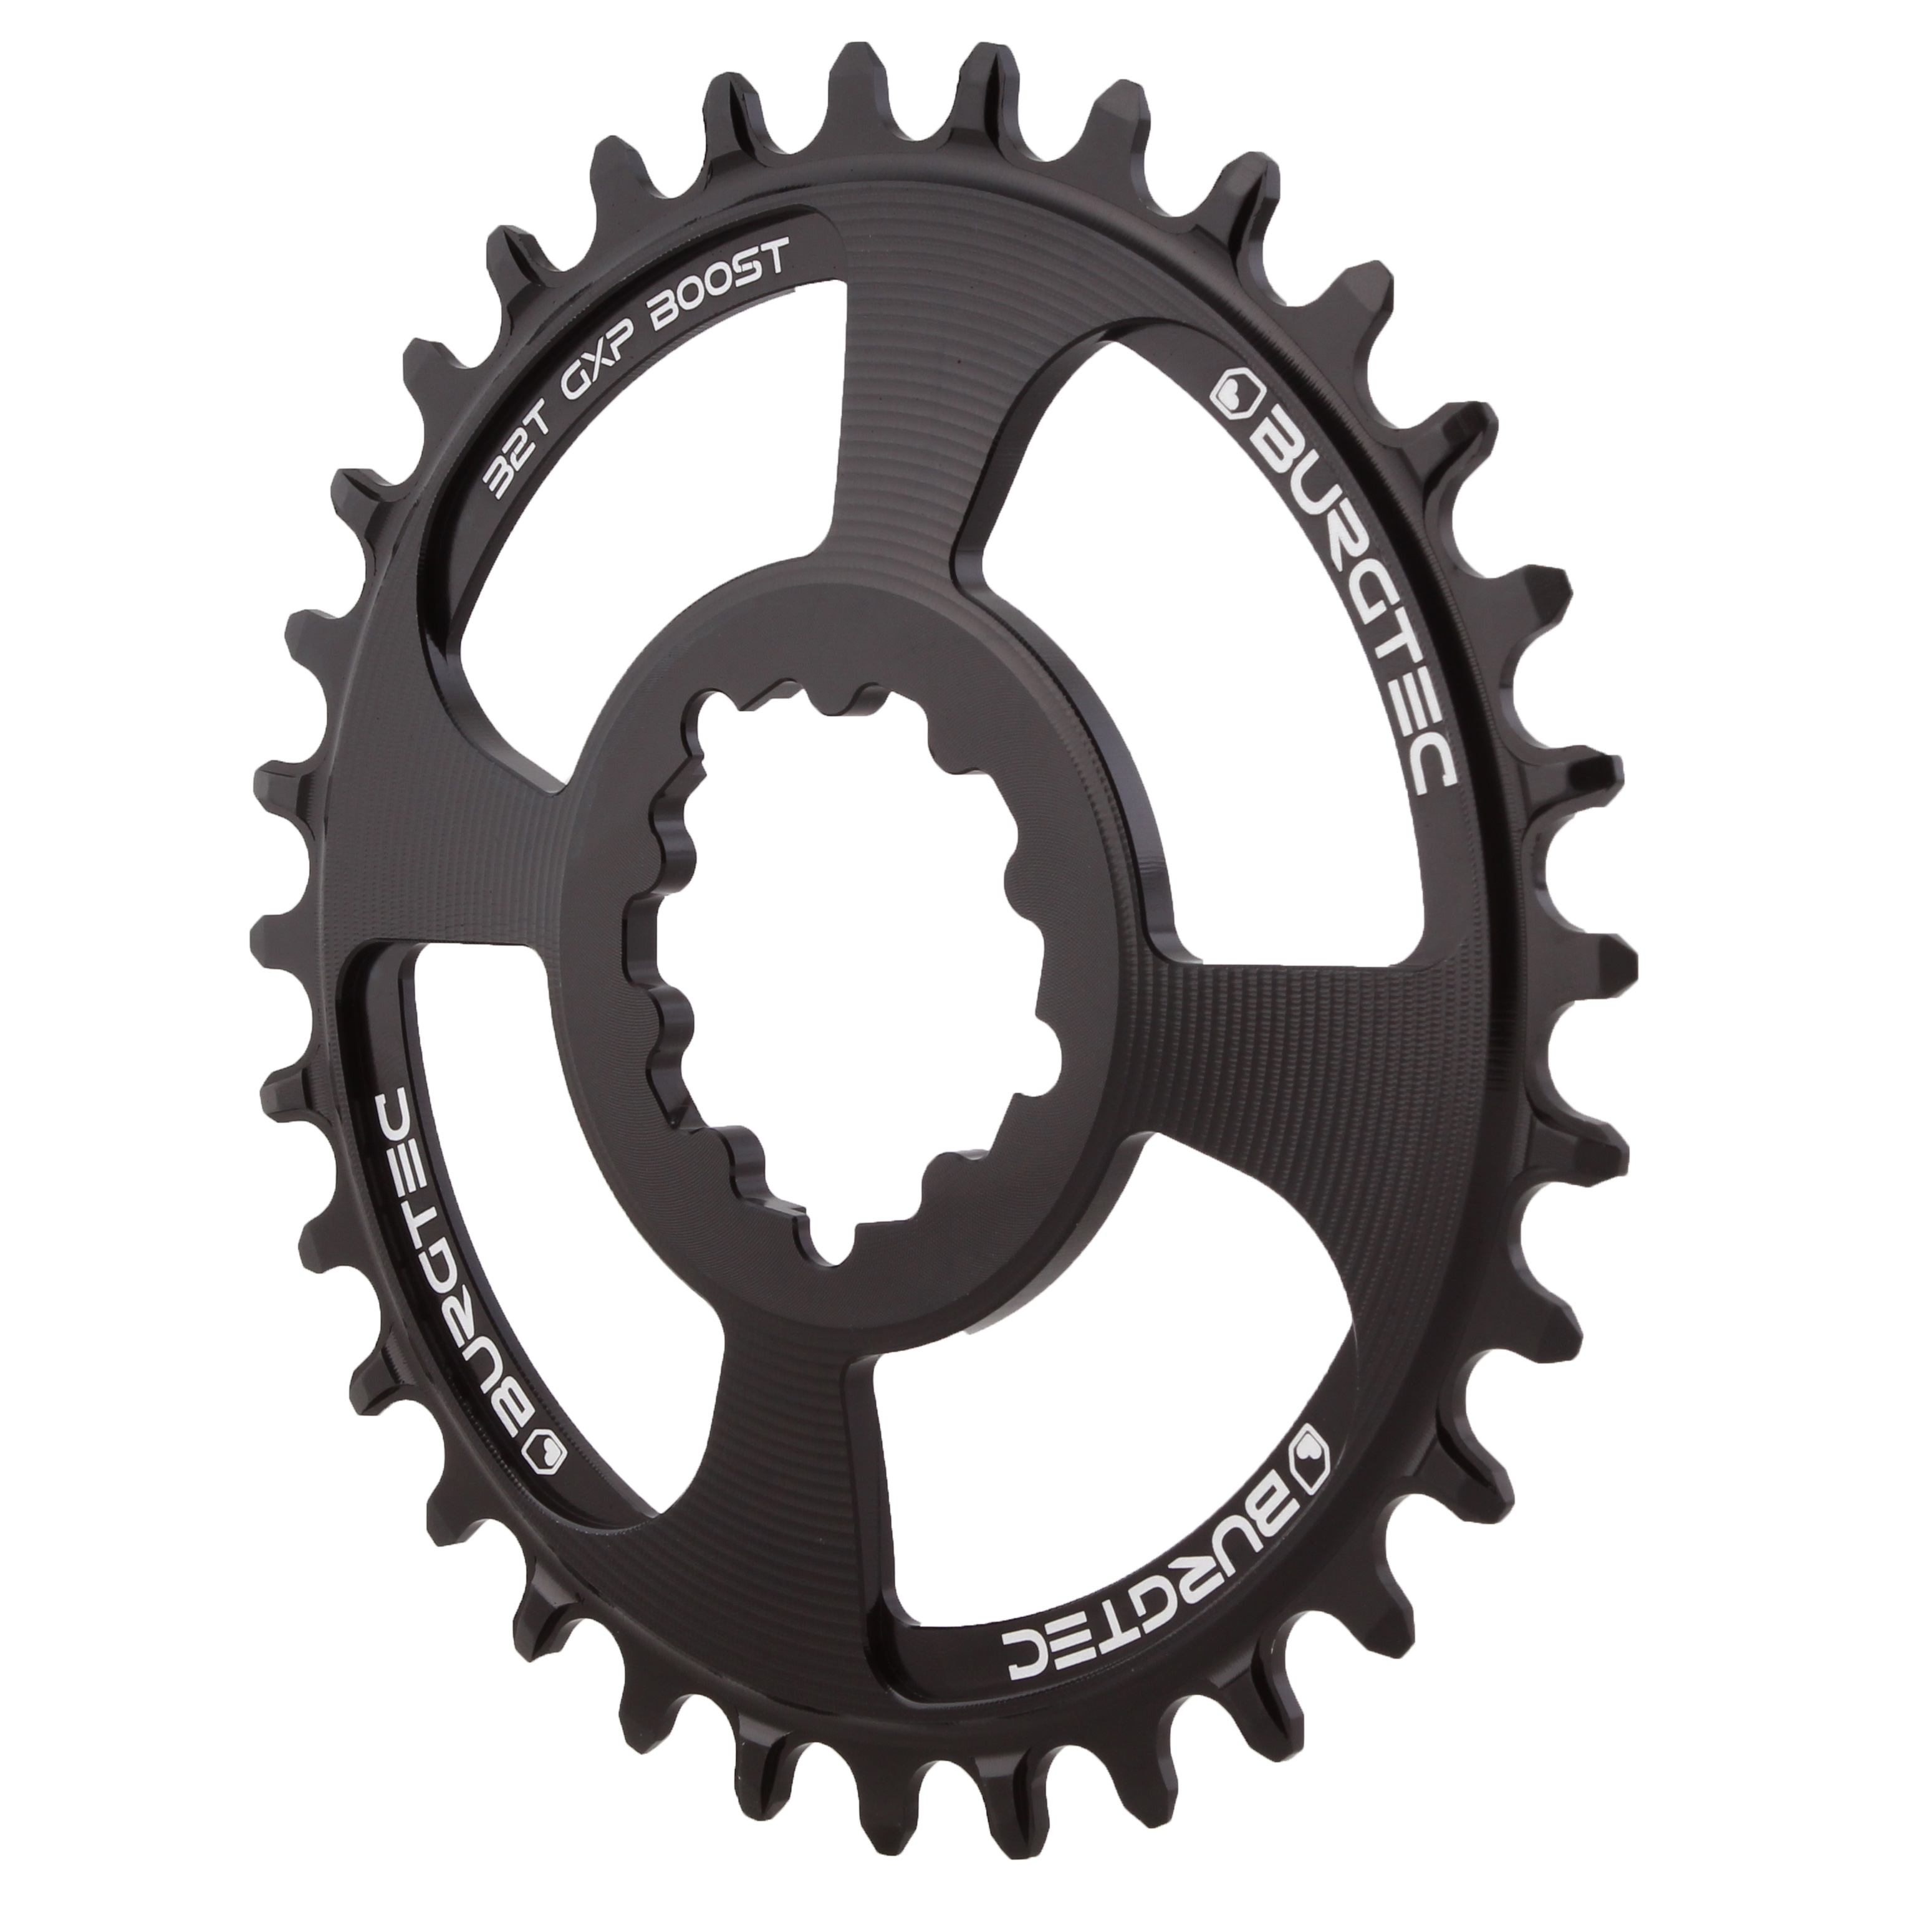 94//96BCD 32T black OneUp Components 94//96 oval chainring